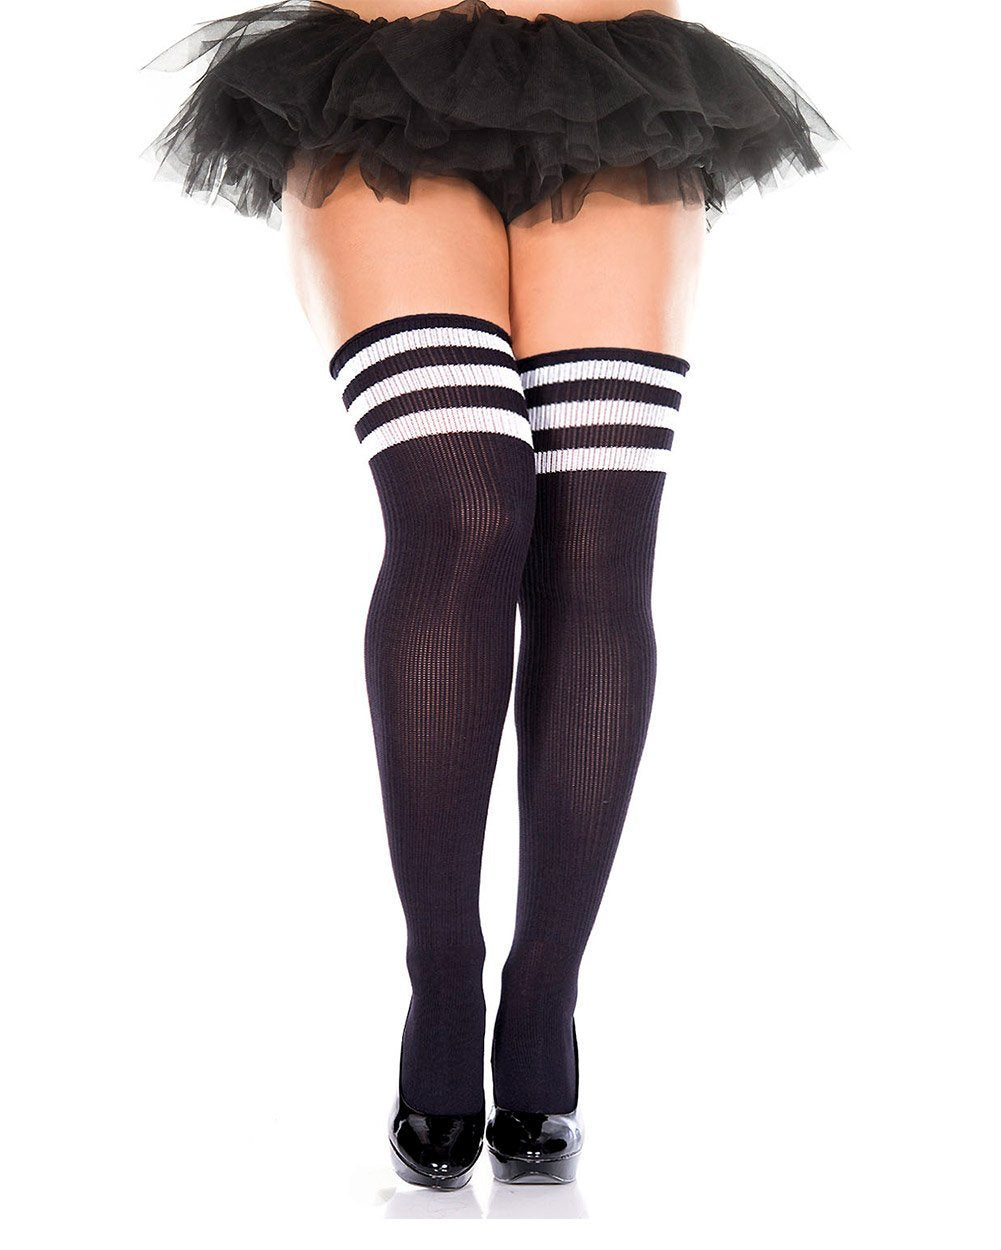 9d1e808701b107 Plus Size Athlete Acrylic Thigh Highs with Striped Top-Black/White ...